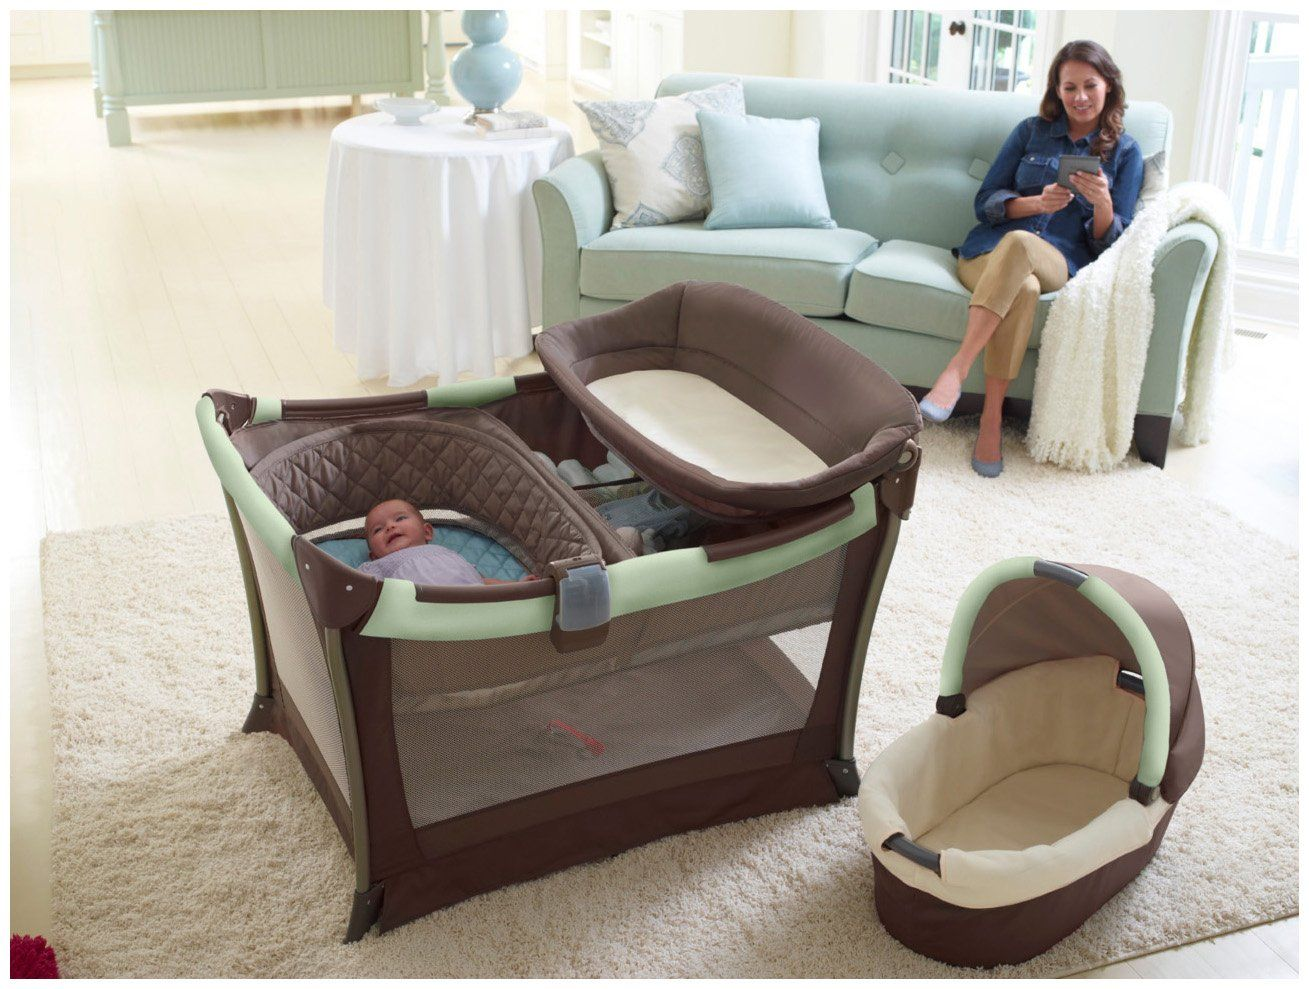 graco bedroom bassinet. graco day2night sleep system - bedroom bassinet \u0026 pack \u0027n play playard ardmore g